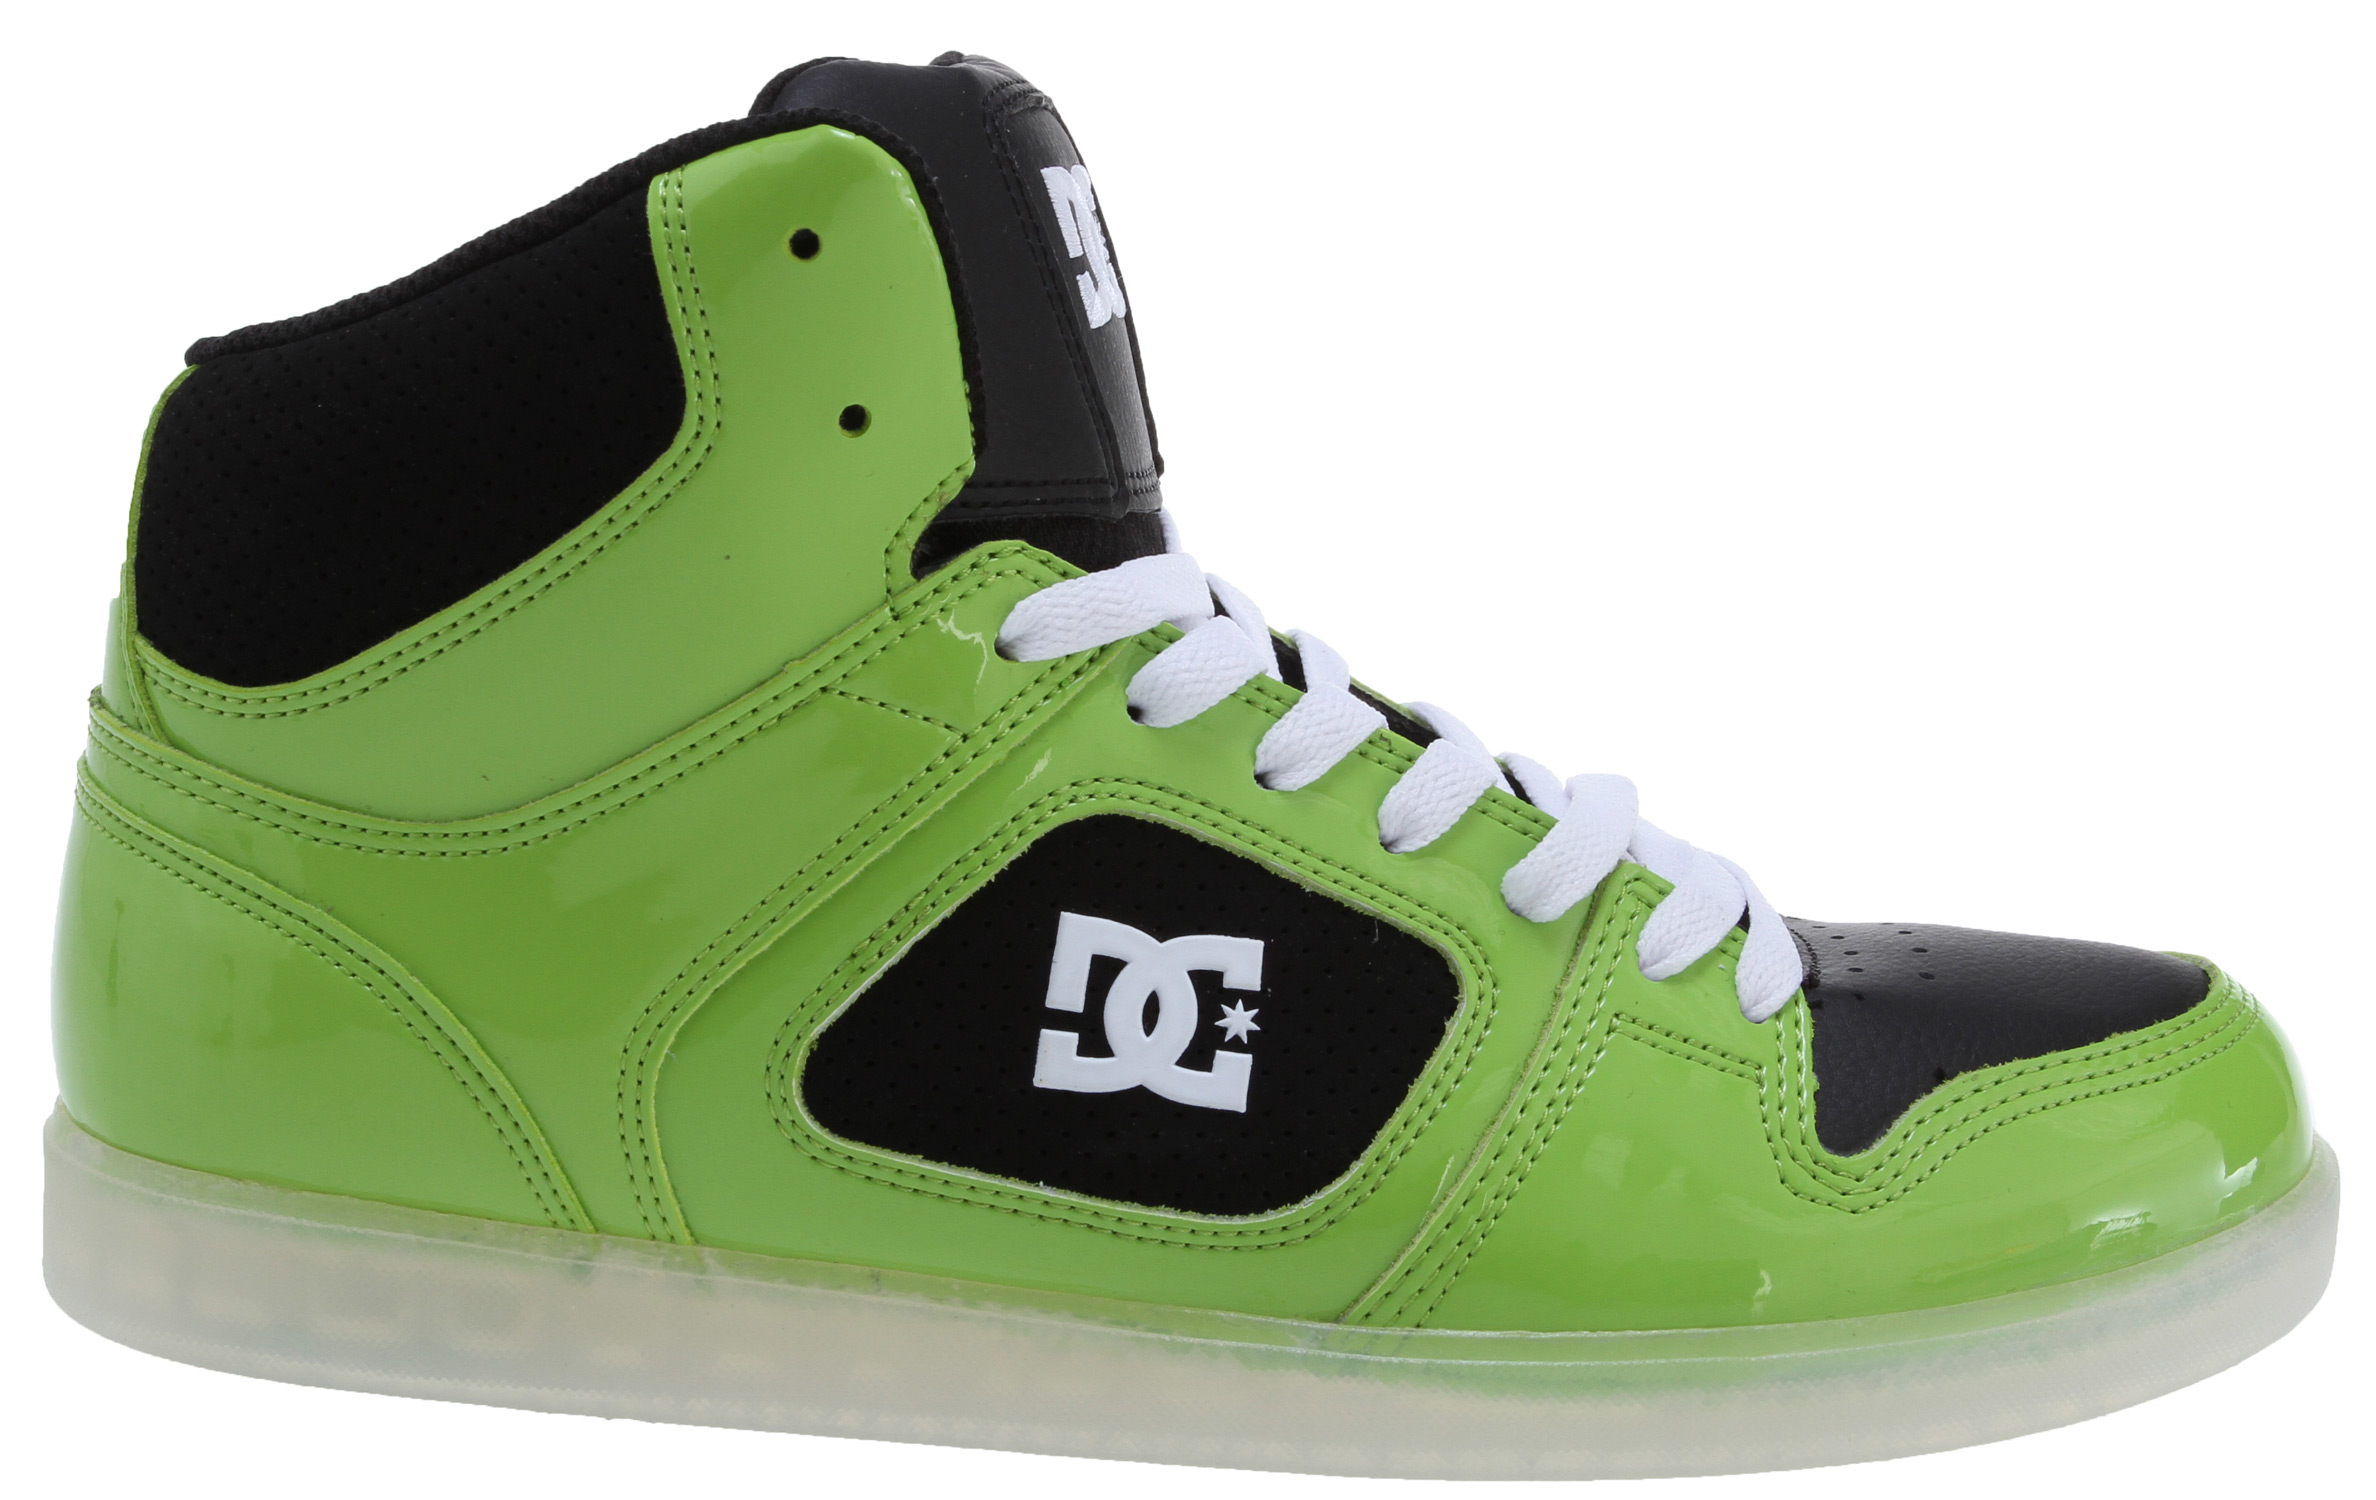 Skateboard Take it hi-top with the Union Hi, a hi-top with an upper built from durable suede, nubuck, or leather and a foam-padded tongue and heel collar for comfort and support. The performance cup sole uses abrasion-resistant sticky rubber on the outsole portion, while the tread has a classic herringbone print.  High Top Collar   Durable Suede, Nubuck Or Leather Upper   Foam Padded Tongue and Collar for Comfort and Support   Vent Holes for Breathability   Performance Cup Sole   Abrasion-Resistant Sticky Rubber Outsole With Classic Herringbone Tread - $43.95